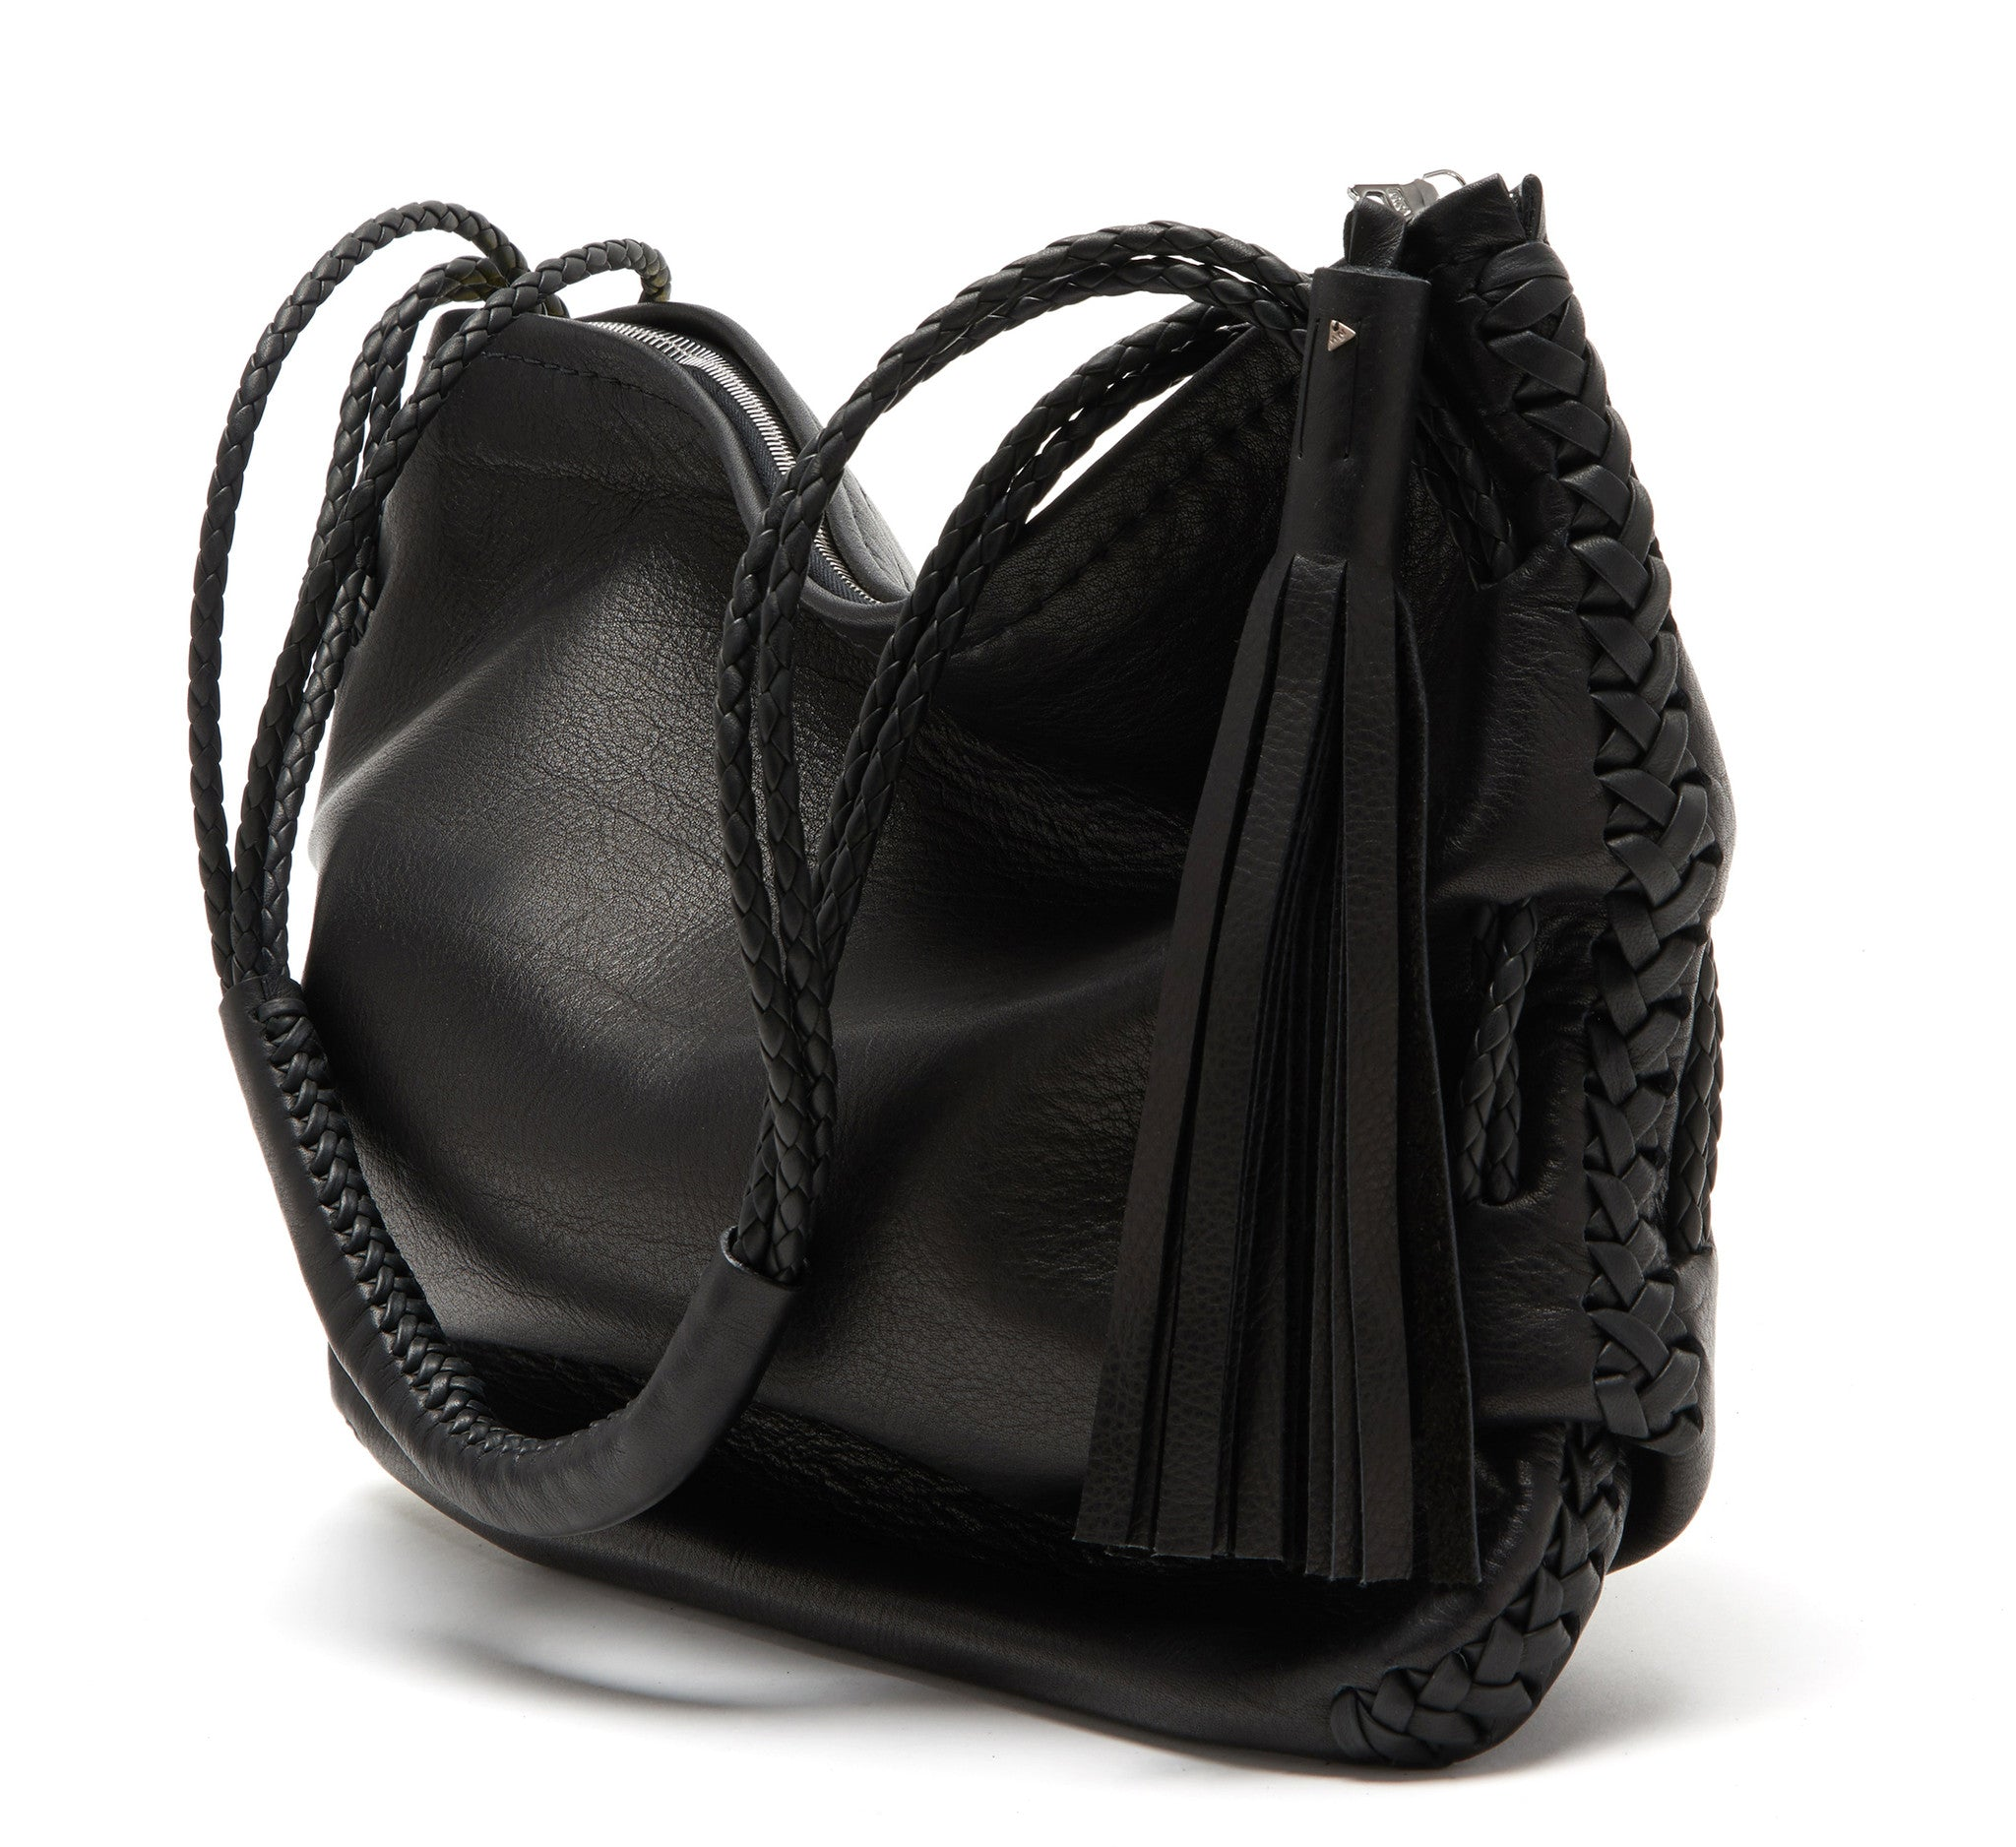 Athena Ruche Bag Black Leather Wendy Nichol Handbag Purse Designer Handmade in NYC New York City Braided Handles Shoulder Zip Zipper Interior Pocket Fringe Tassel Medium Size Soft Pouch Bag High Quality Leather